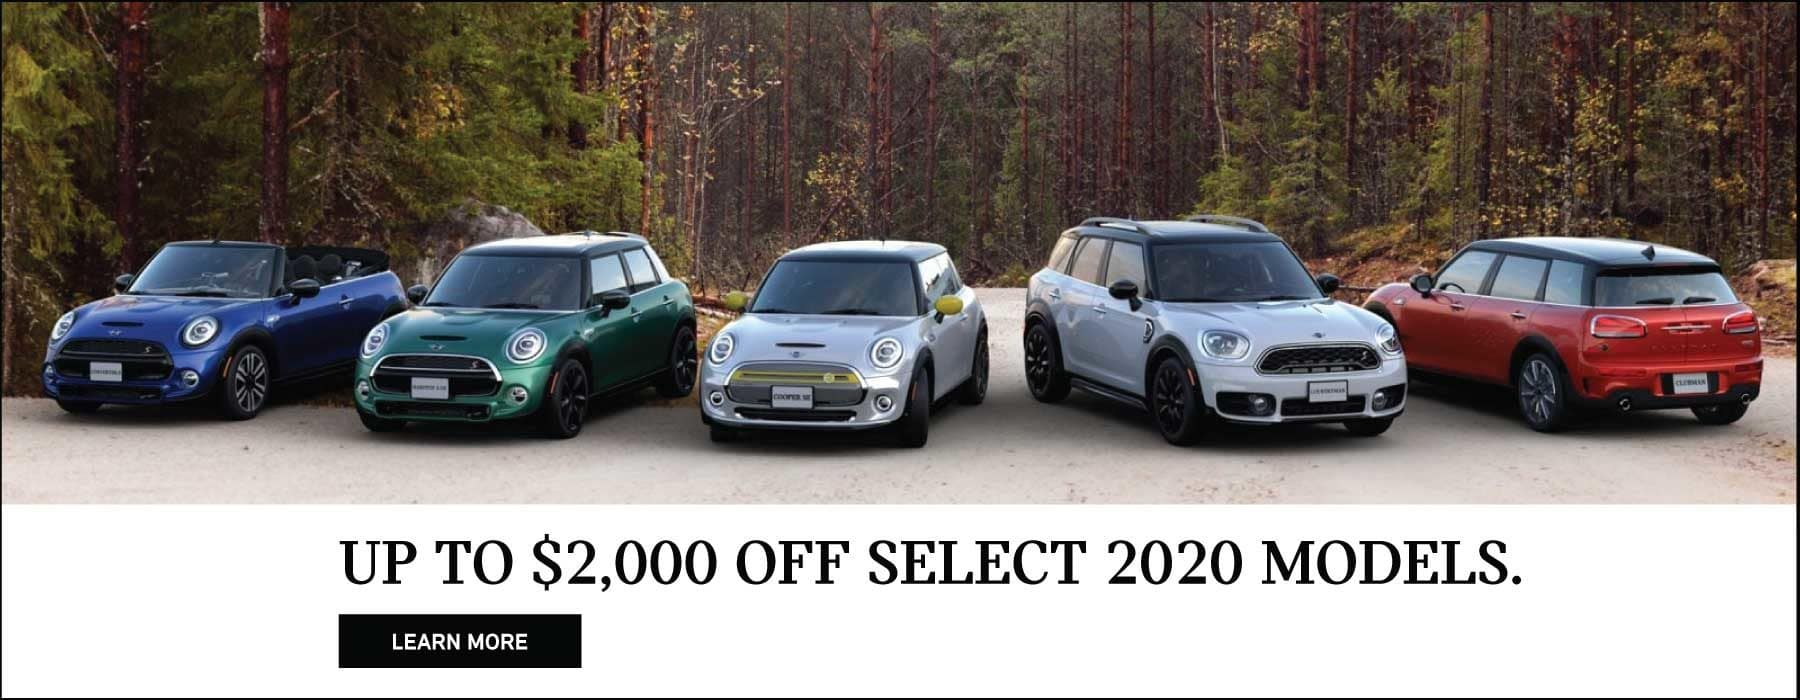 MINI family of vehicles with forest background. Up to $2,000 off select 2020 models.